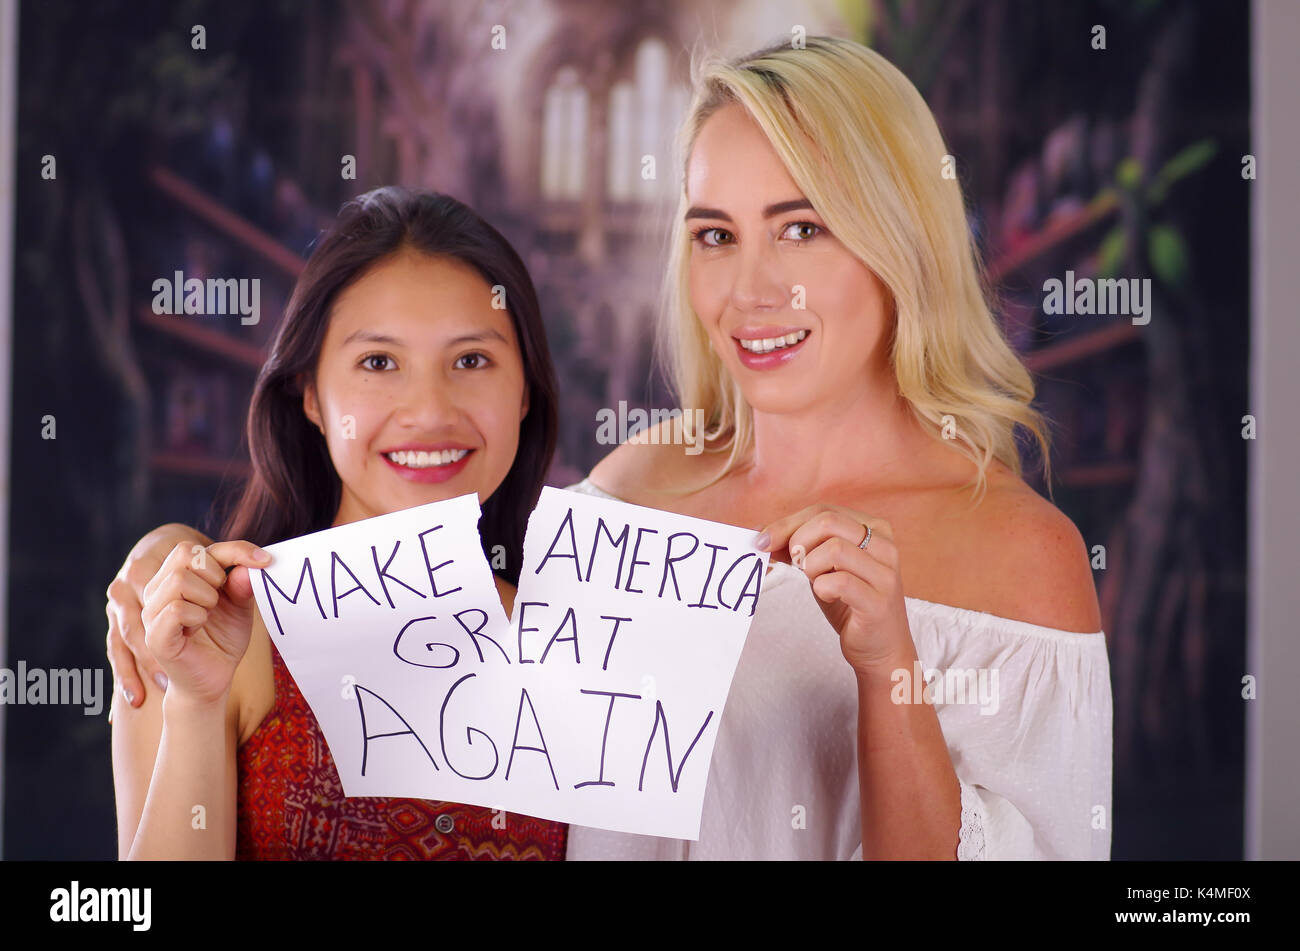 Two young women blonde and latin girl smiling and breaking racism idiosyncrasy from a american person and foreign people, destroying a paper that is written make america great again, racism, violence or discrimination concept - Stock Image